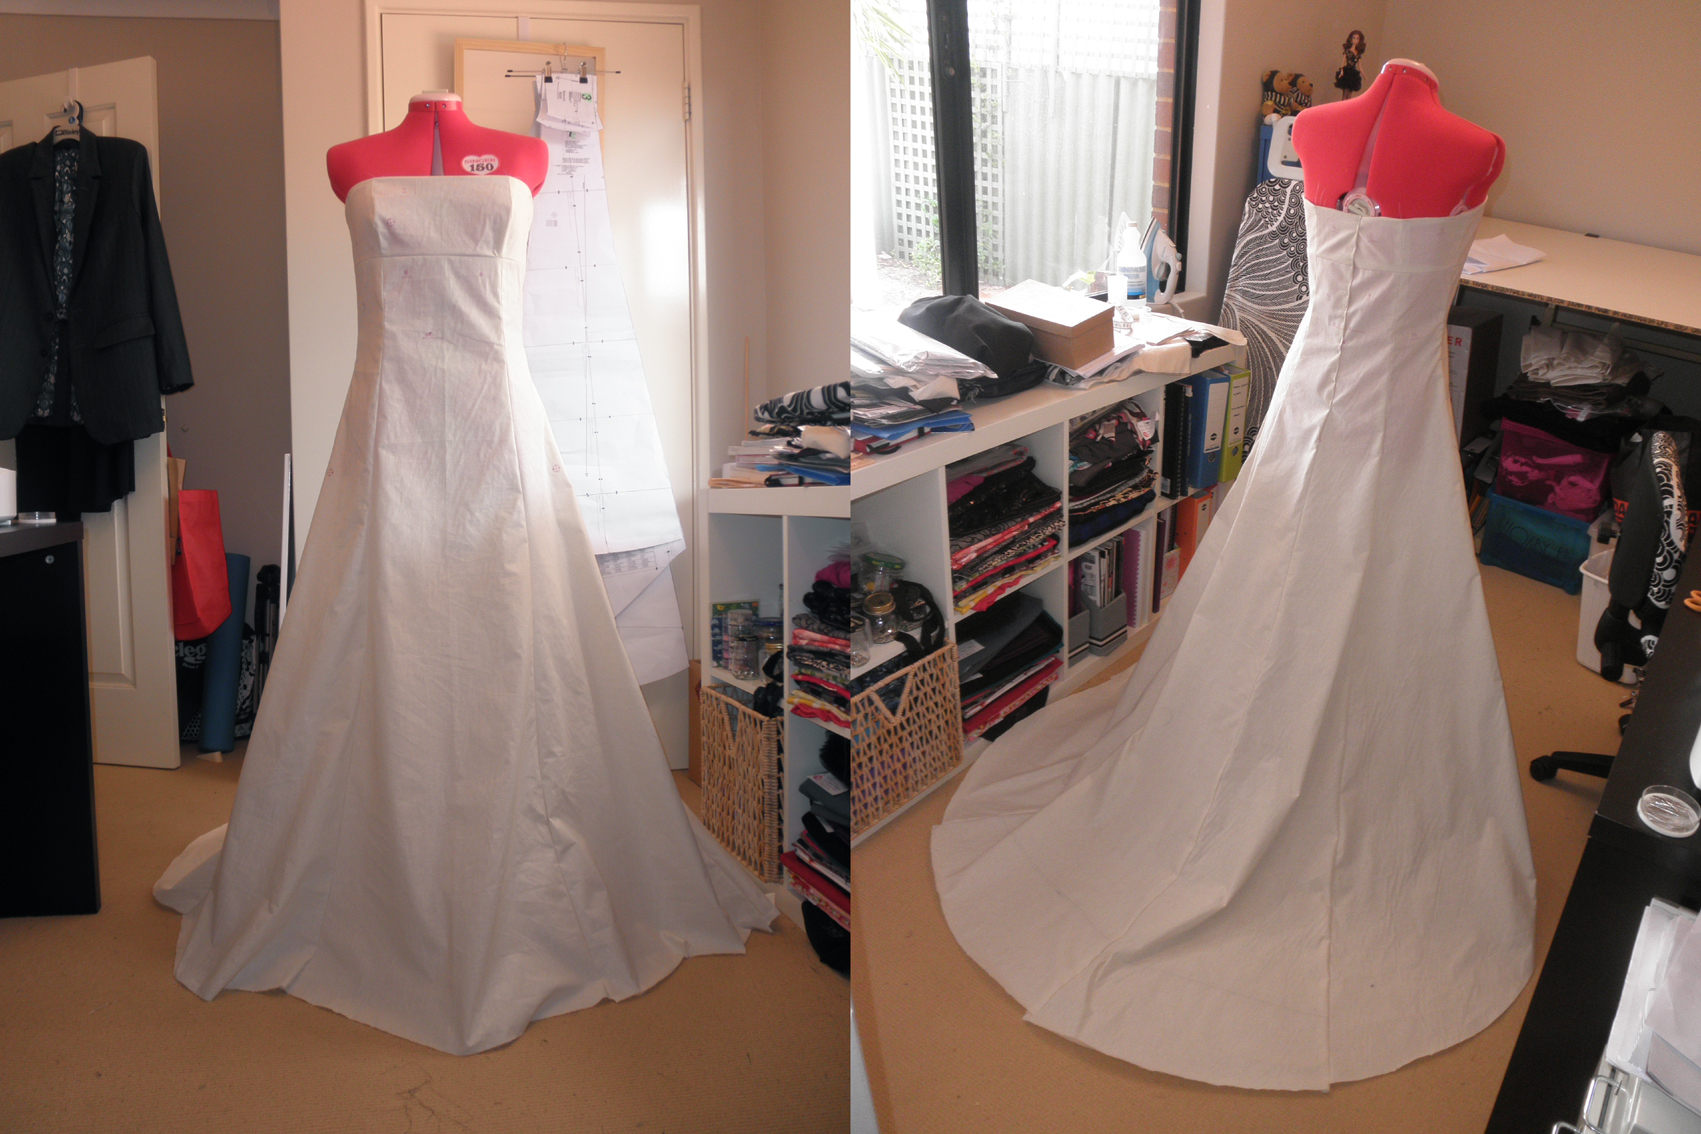 How to sew your own wedding dress the curious kiwi for How to make a wedding dress